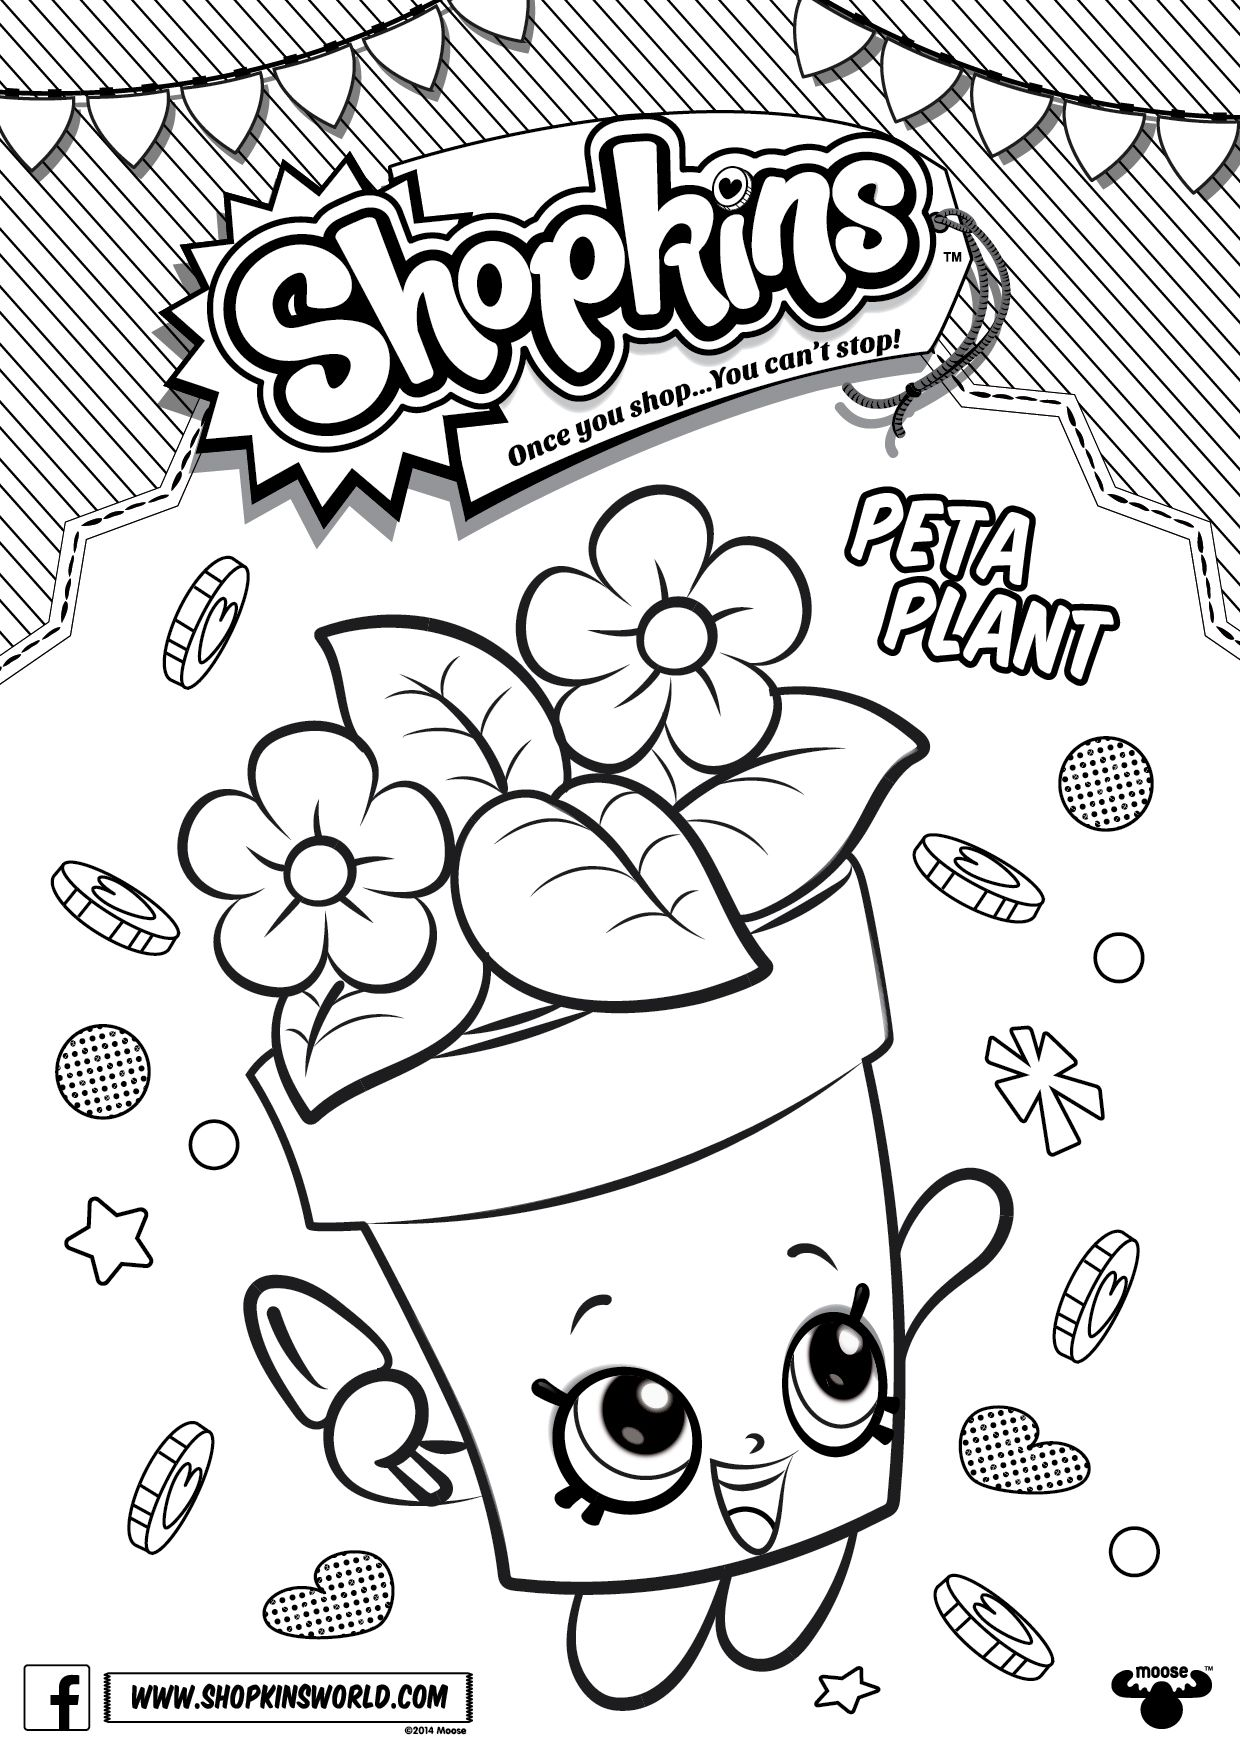 104820m R01s04 Spks4 Colour In Faol Core 0 Jpg 1 240 1 754 Pixels Shopkins Colouring Pages Shopkin Coloring Pages Coloring Pages